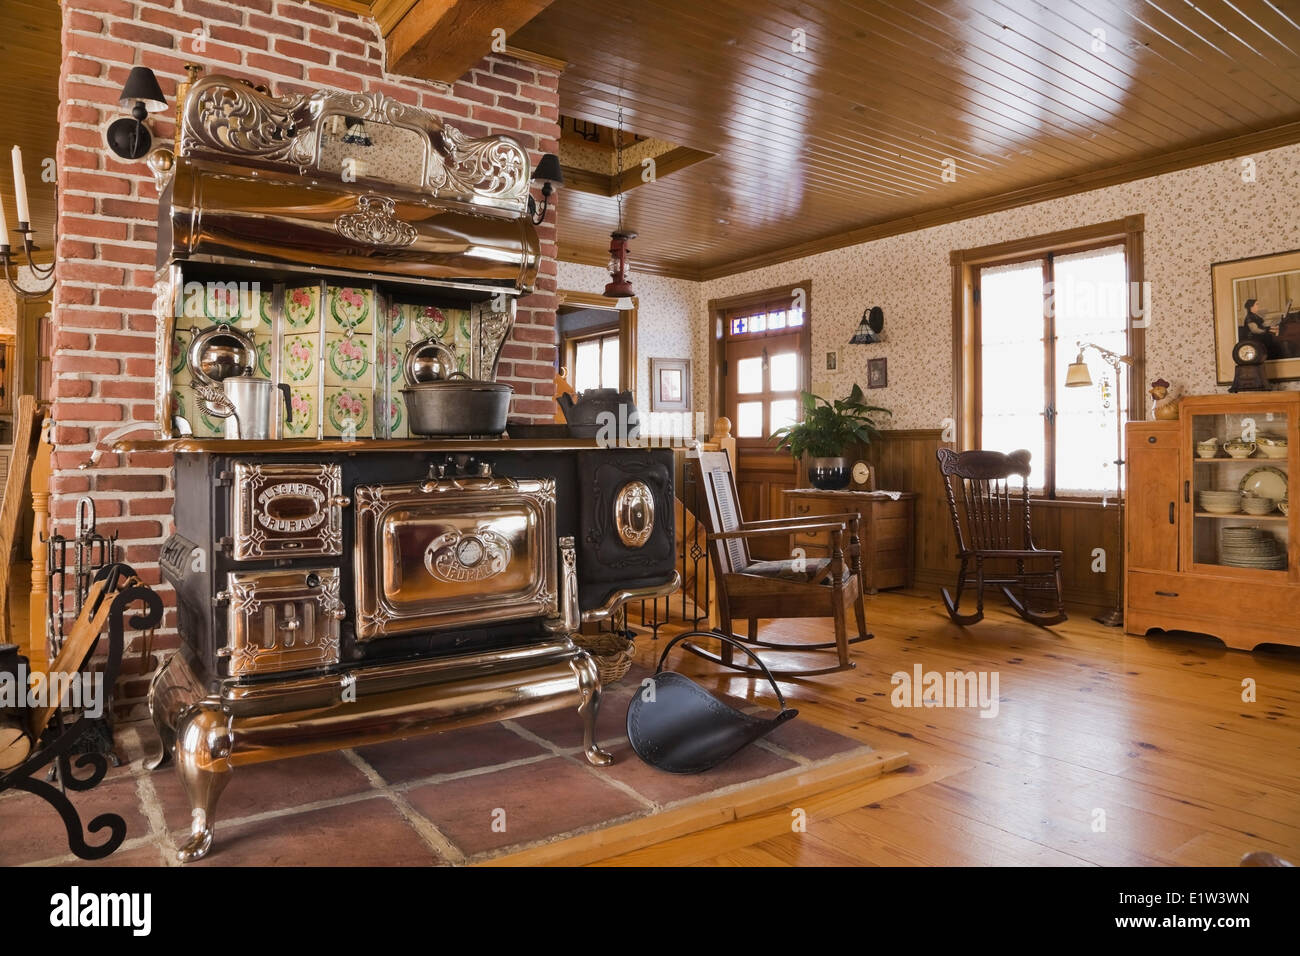 Old Legare's Rural Antique Wood Stove In The Living Room A